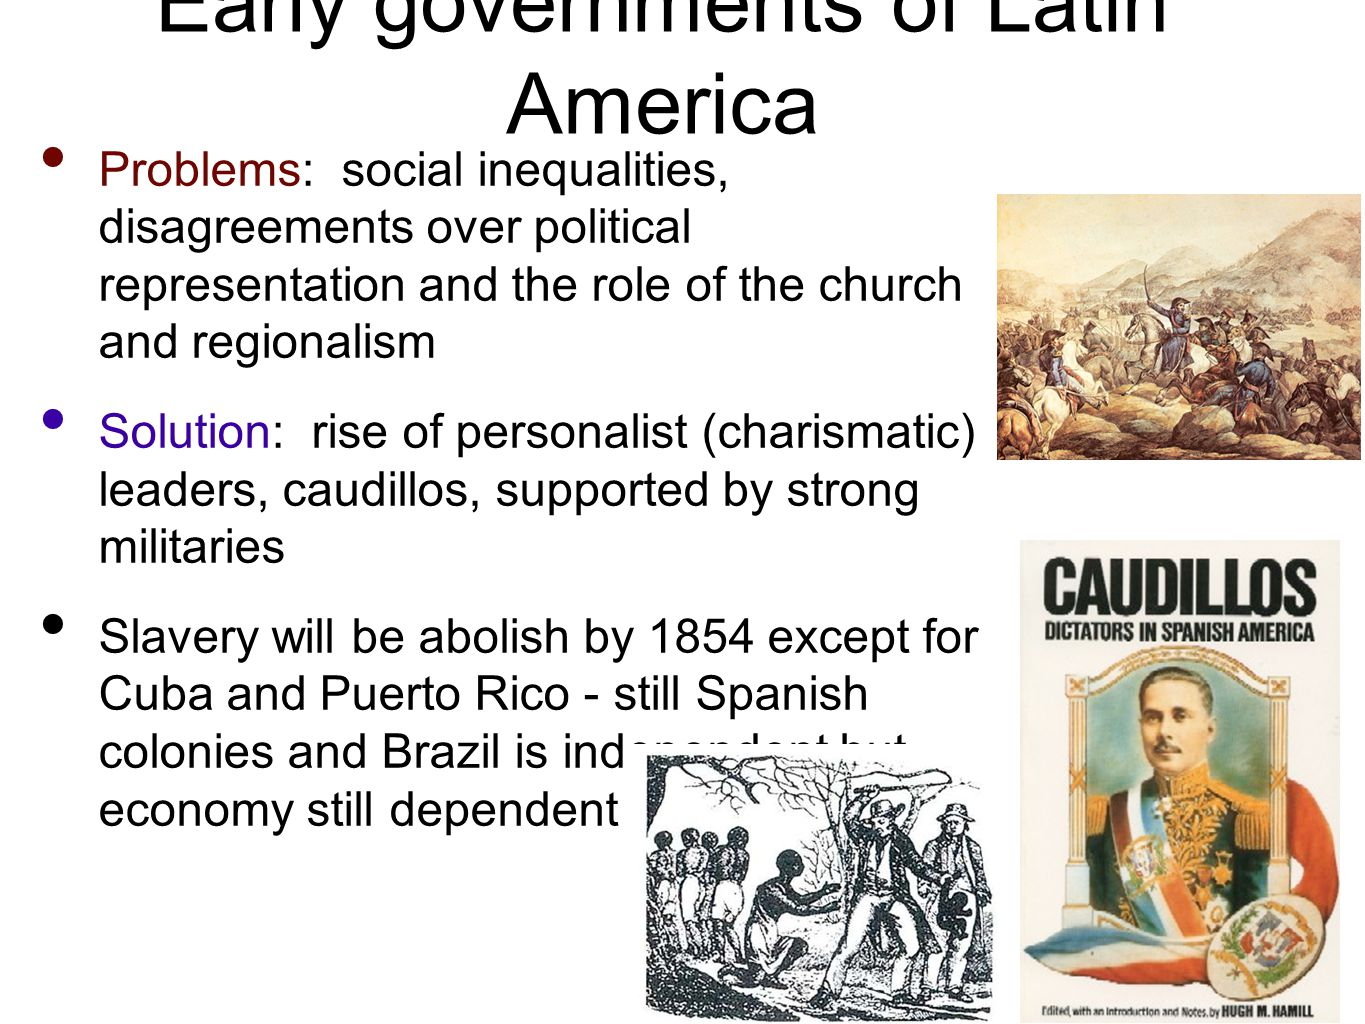 Early governments of Latin America